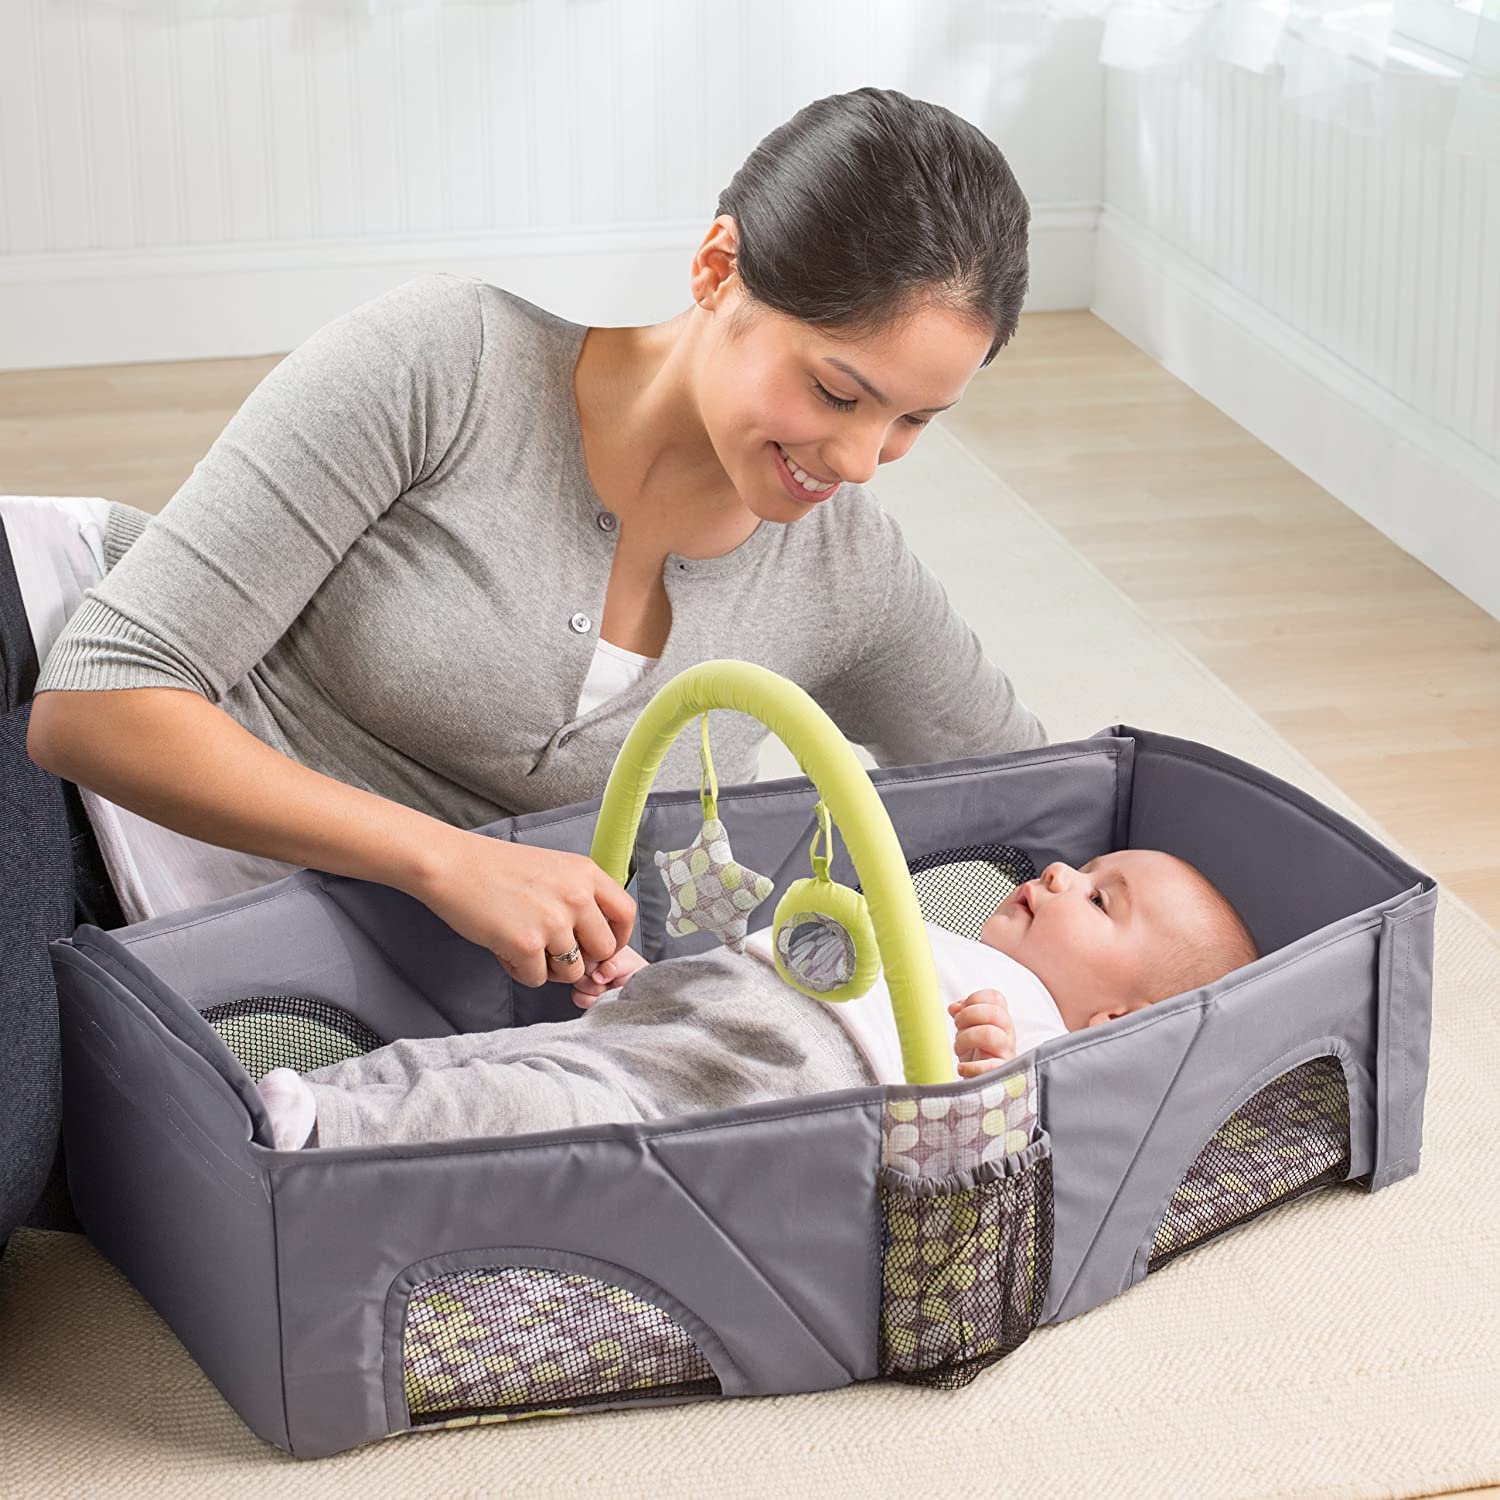 Baby jeep bed - Amazon Com Summer Infant Travel Bed Infant And Toddler Travel Beds Baby